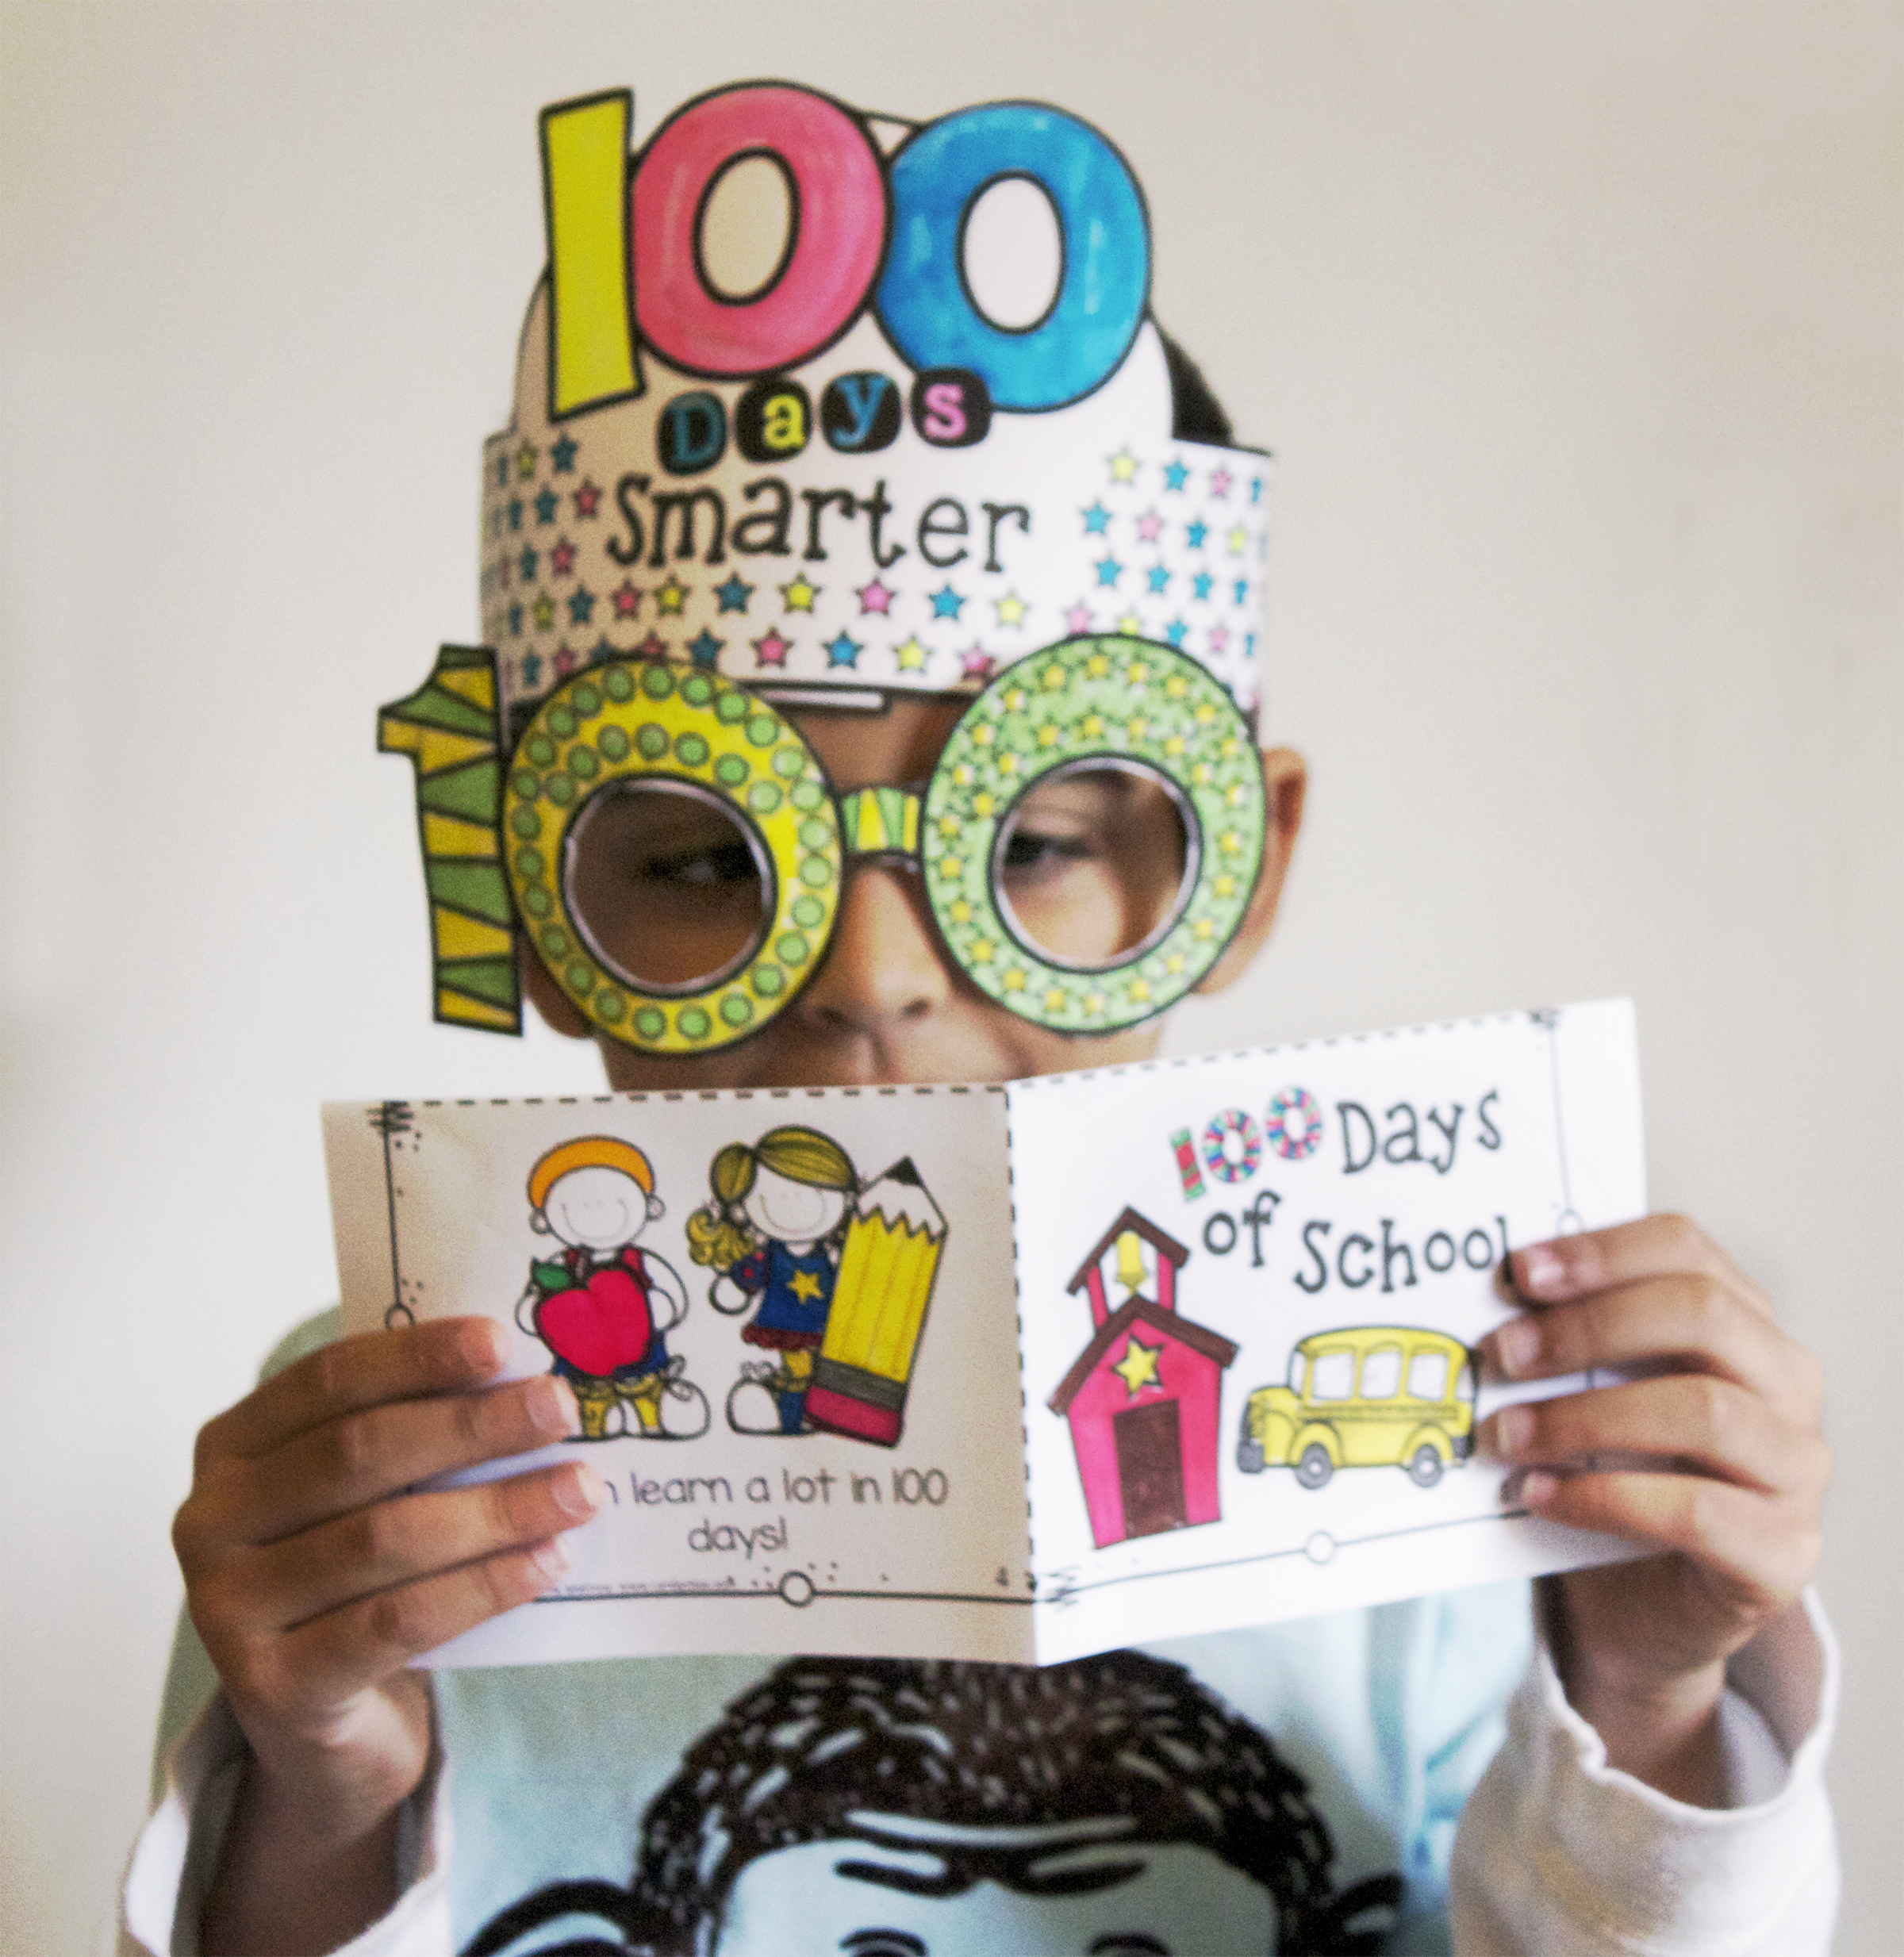 100th Day of School….Let's Celebrate!